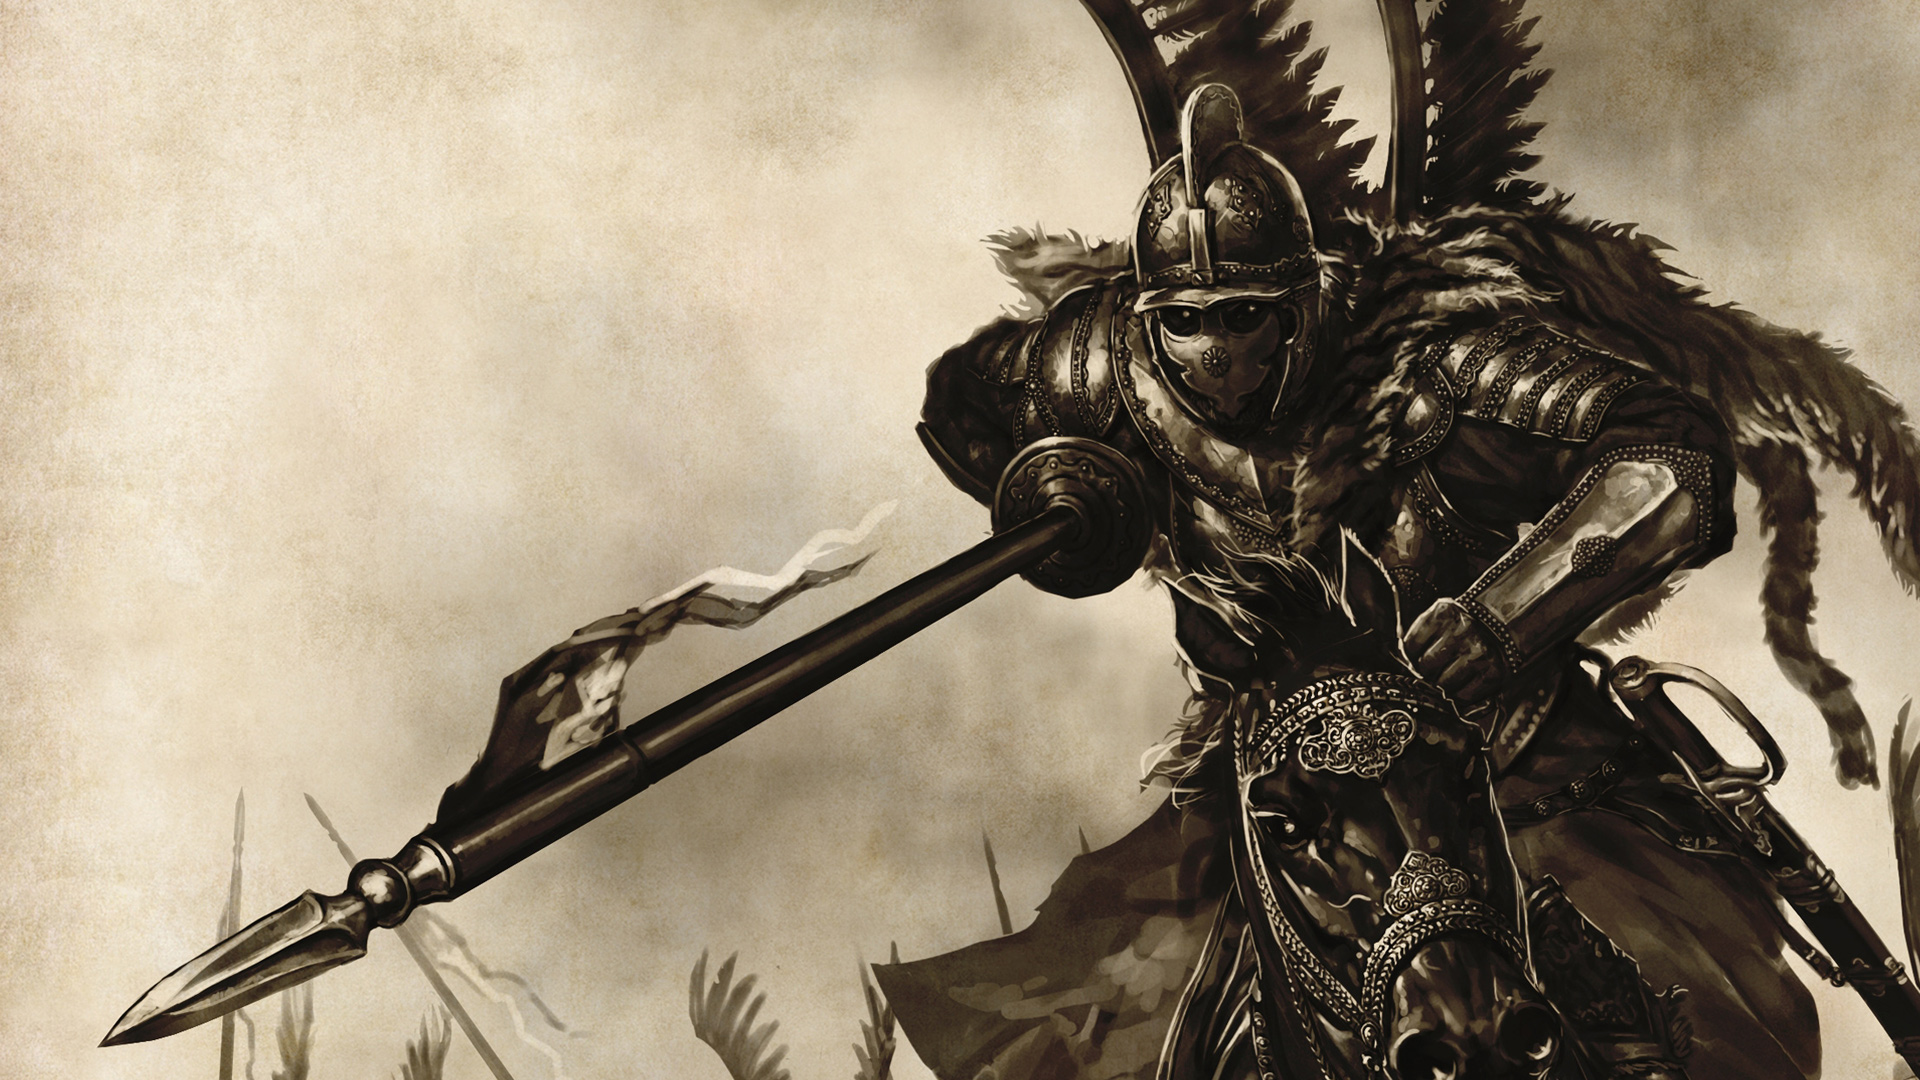 MOUNT AND BLADE fantasy warrior armor weapon g wallpaper 1920x1080 1920x1080